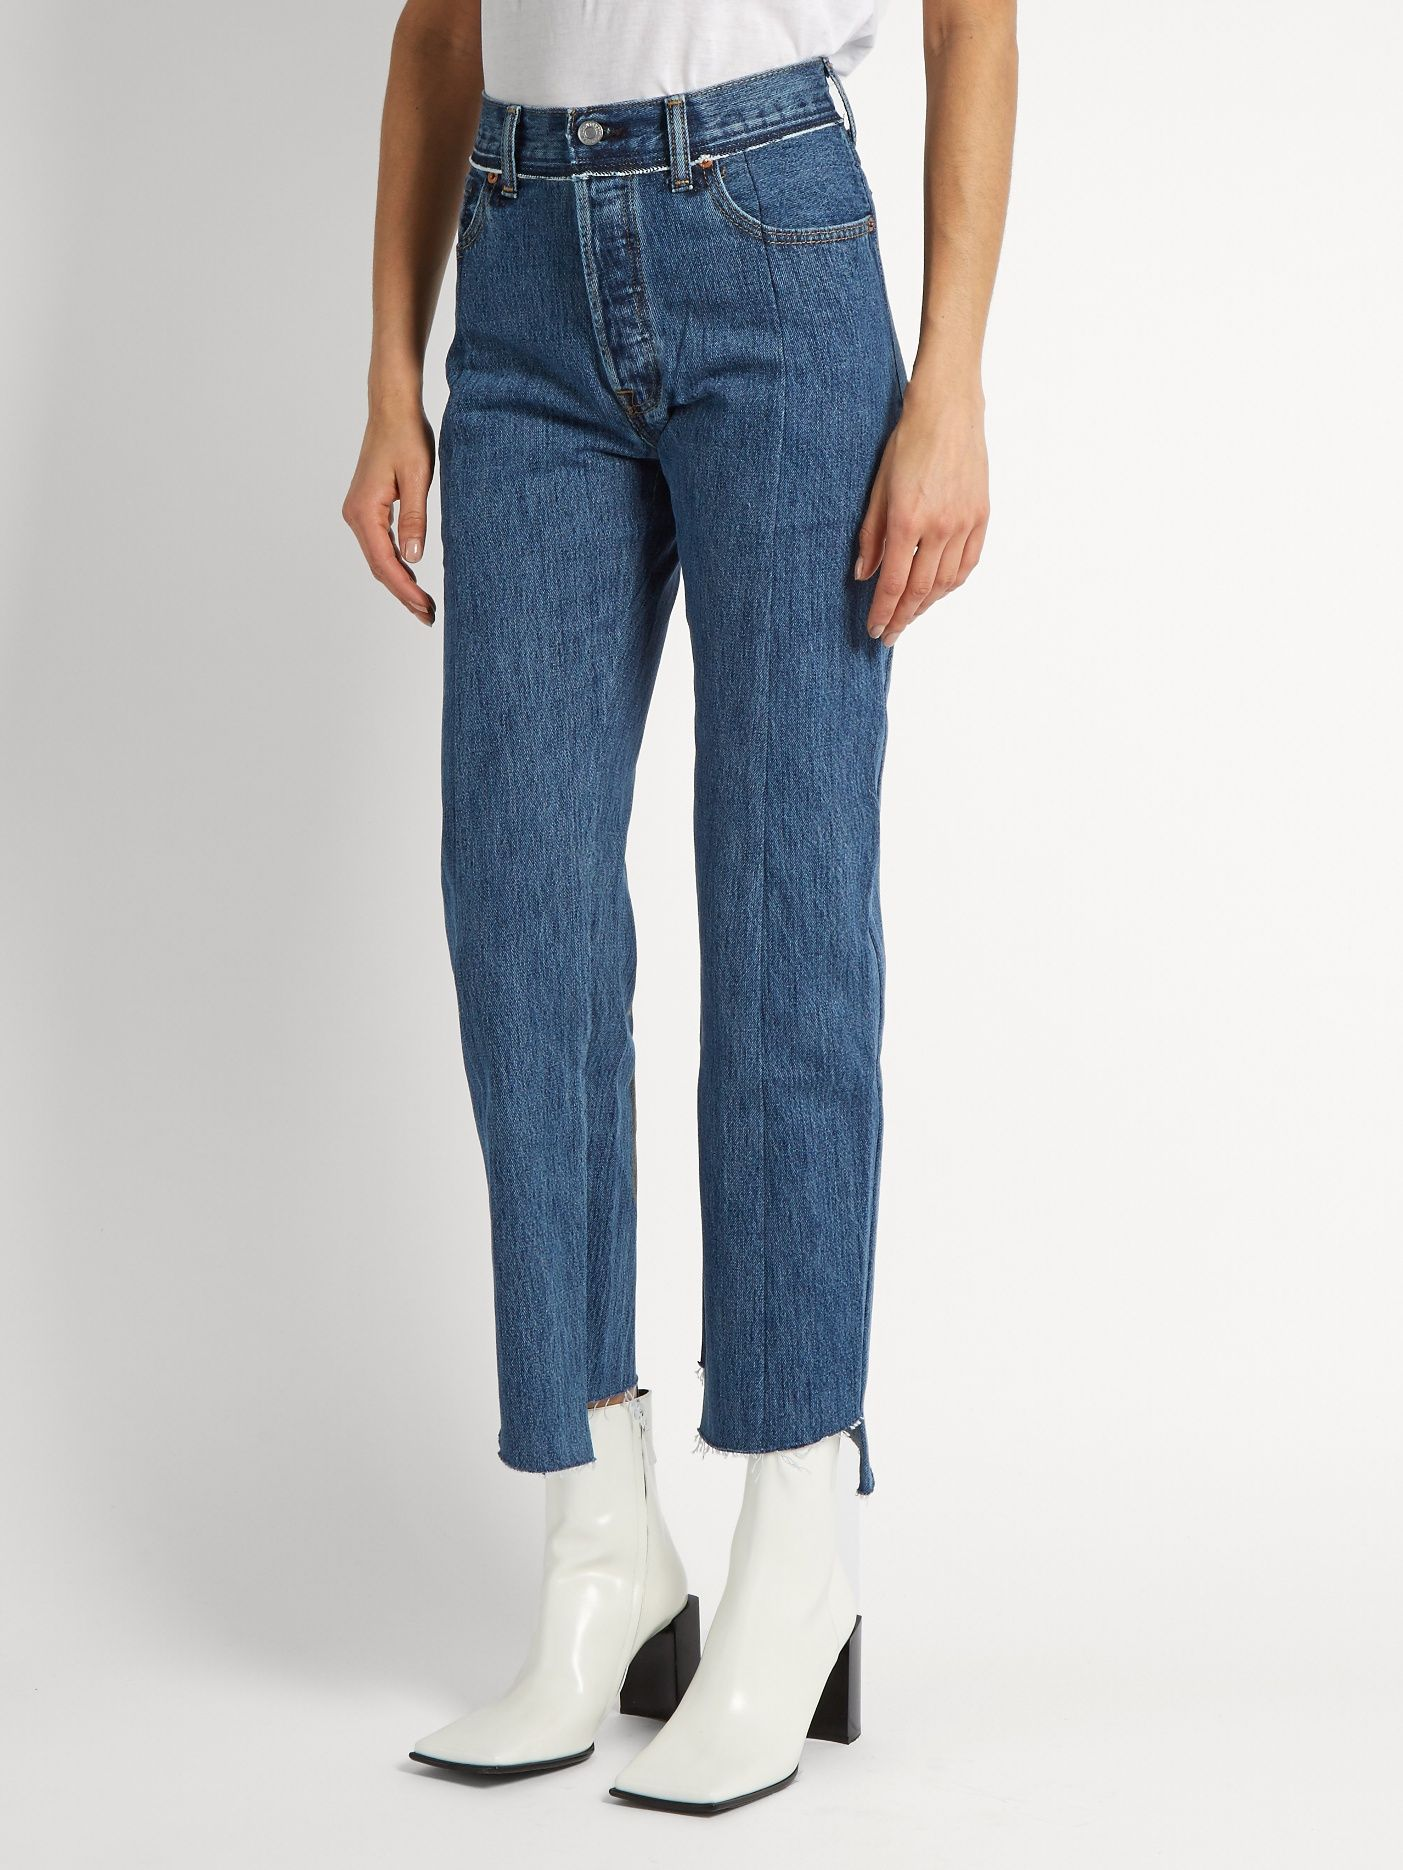 Click here to buy Vetements X Levi's reworked straight leg